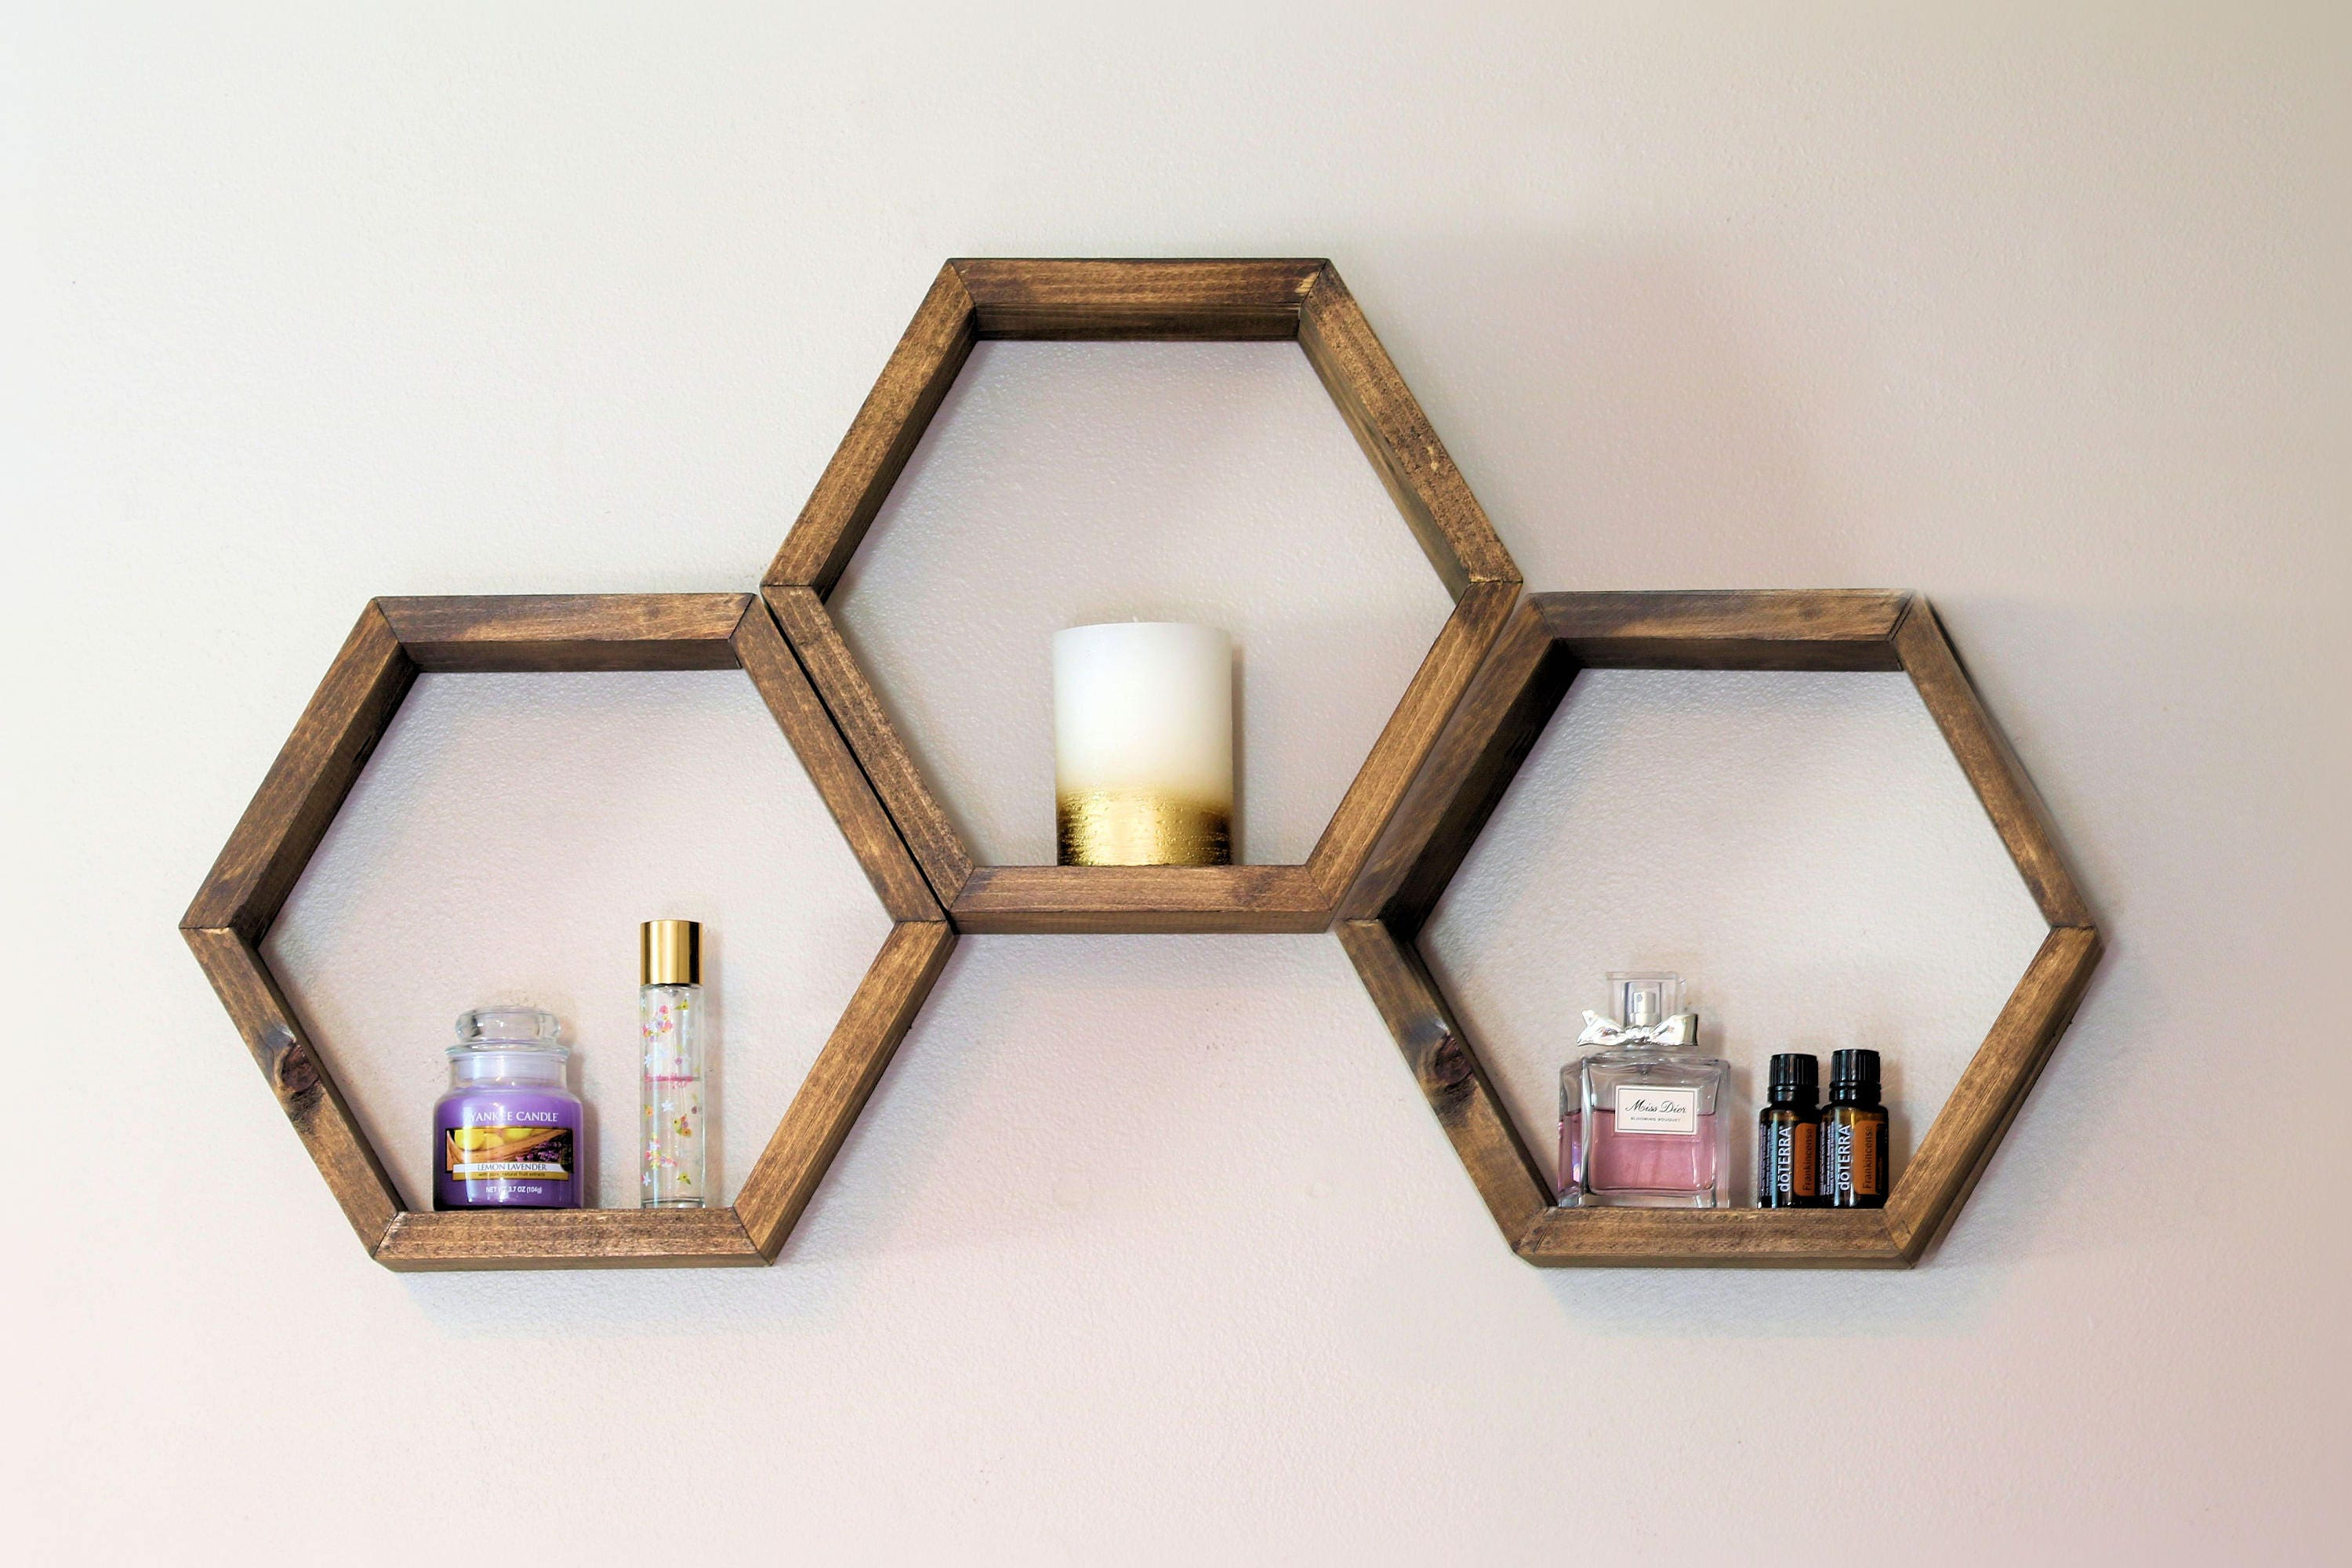 Honeycomb Shelf Honeycomb Shelves Hex Shelves Hexagon